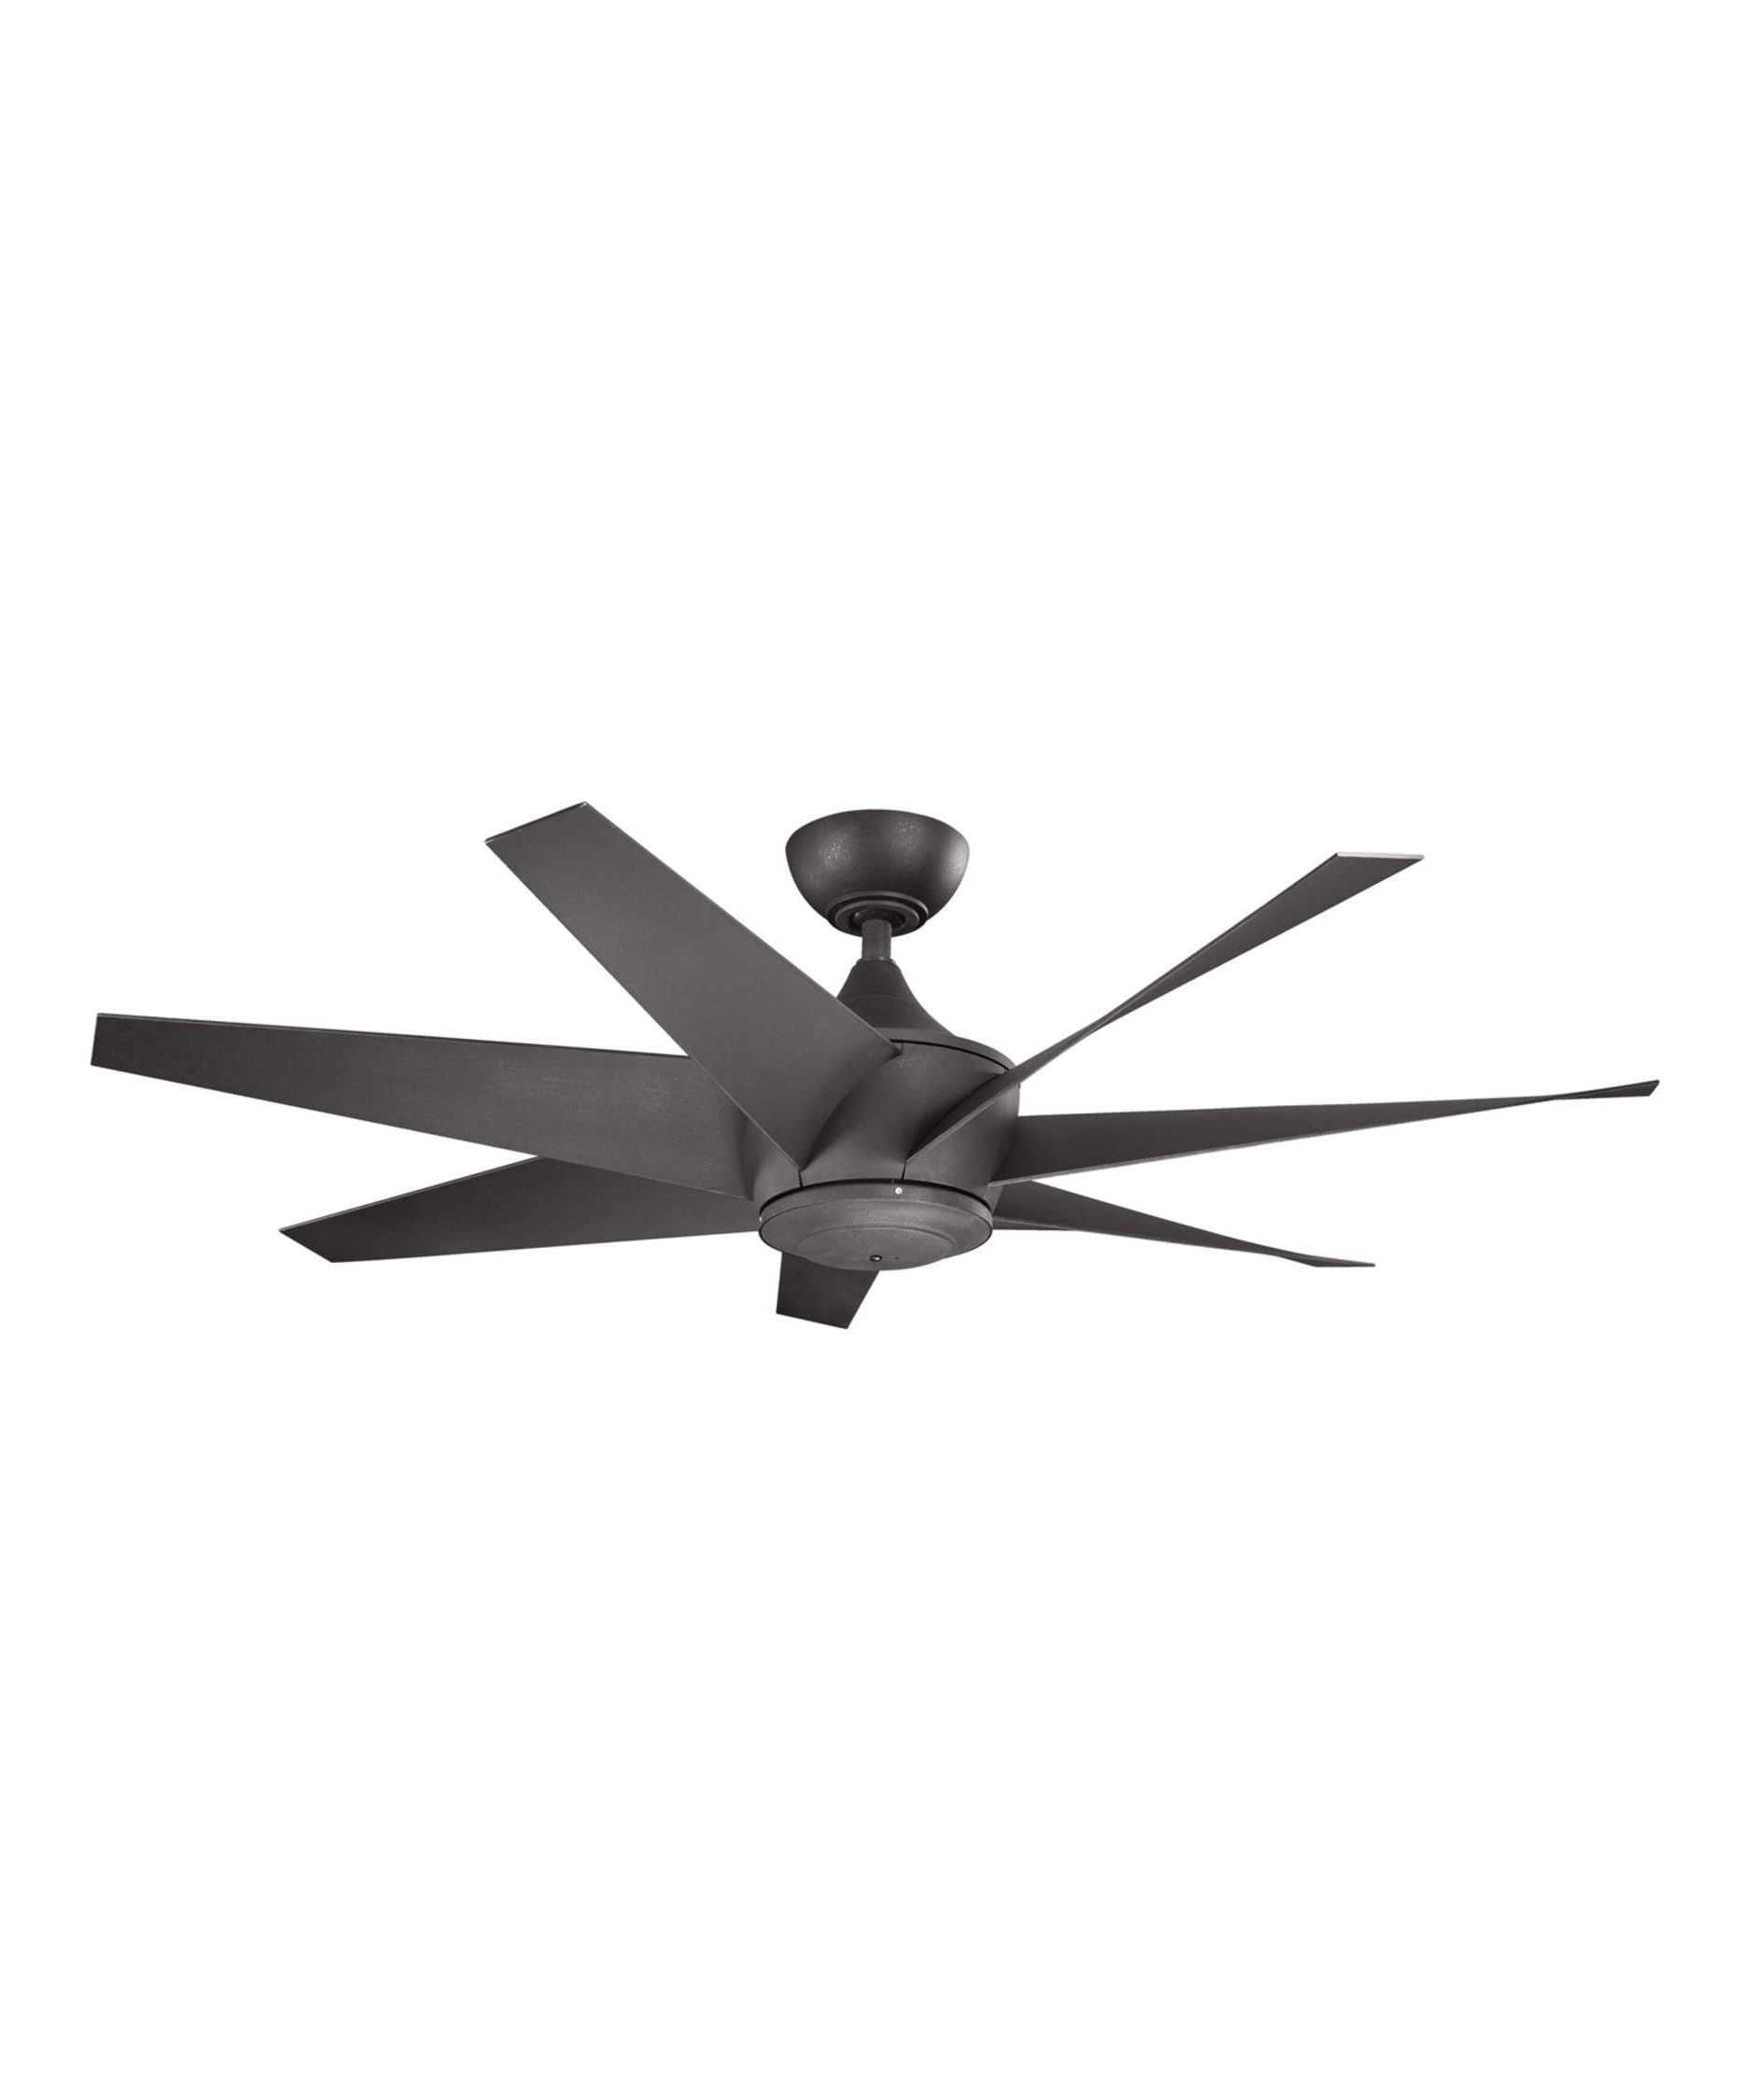 Outdoor Ceiling Fans For 7 Foot Ceilings Intended For Latest Kichler Lehr Ii 54 Inch 7 Blade Ceiling Fan (View 16 of 20)